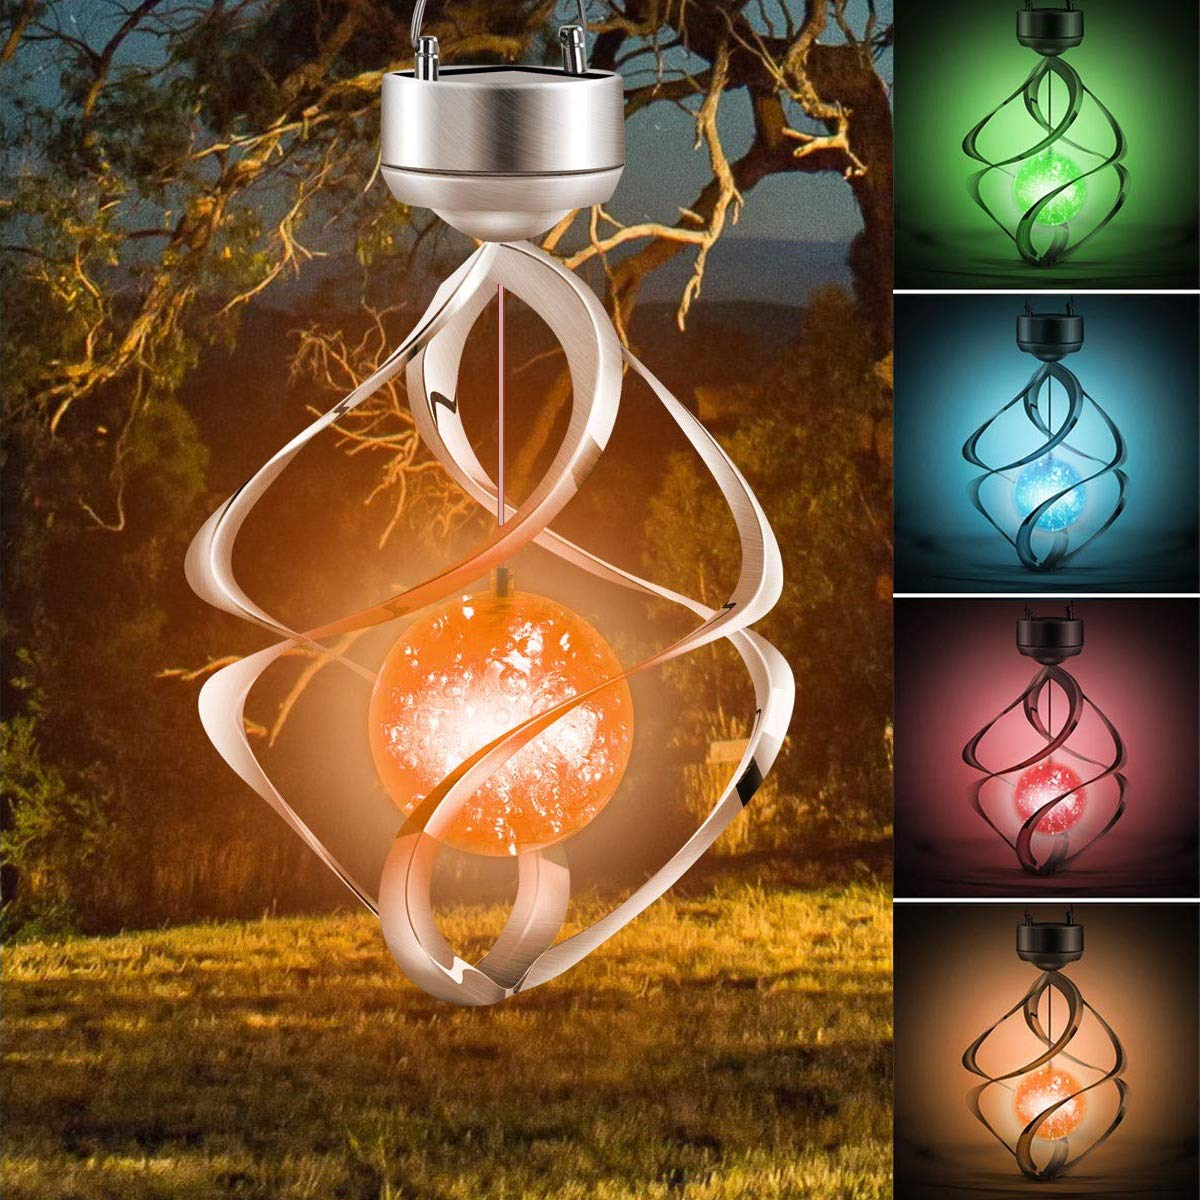 AMWGIMI Hanging Solar Lights Outdoor Wind Chimes Lights LED Colour Changing Hanging Light Waterproof Spiral Spinner Lamp for Design Decoration for Garden, Patio, Balcony Outdoor & Indoor by AMWGIMI